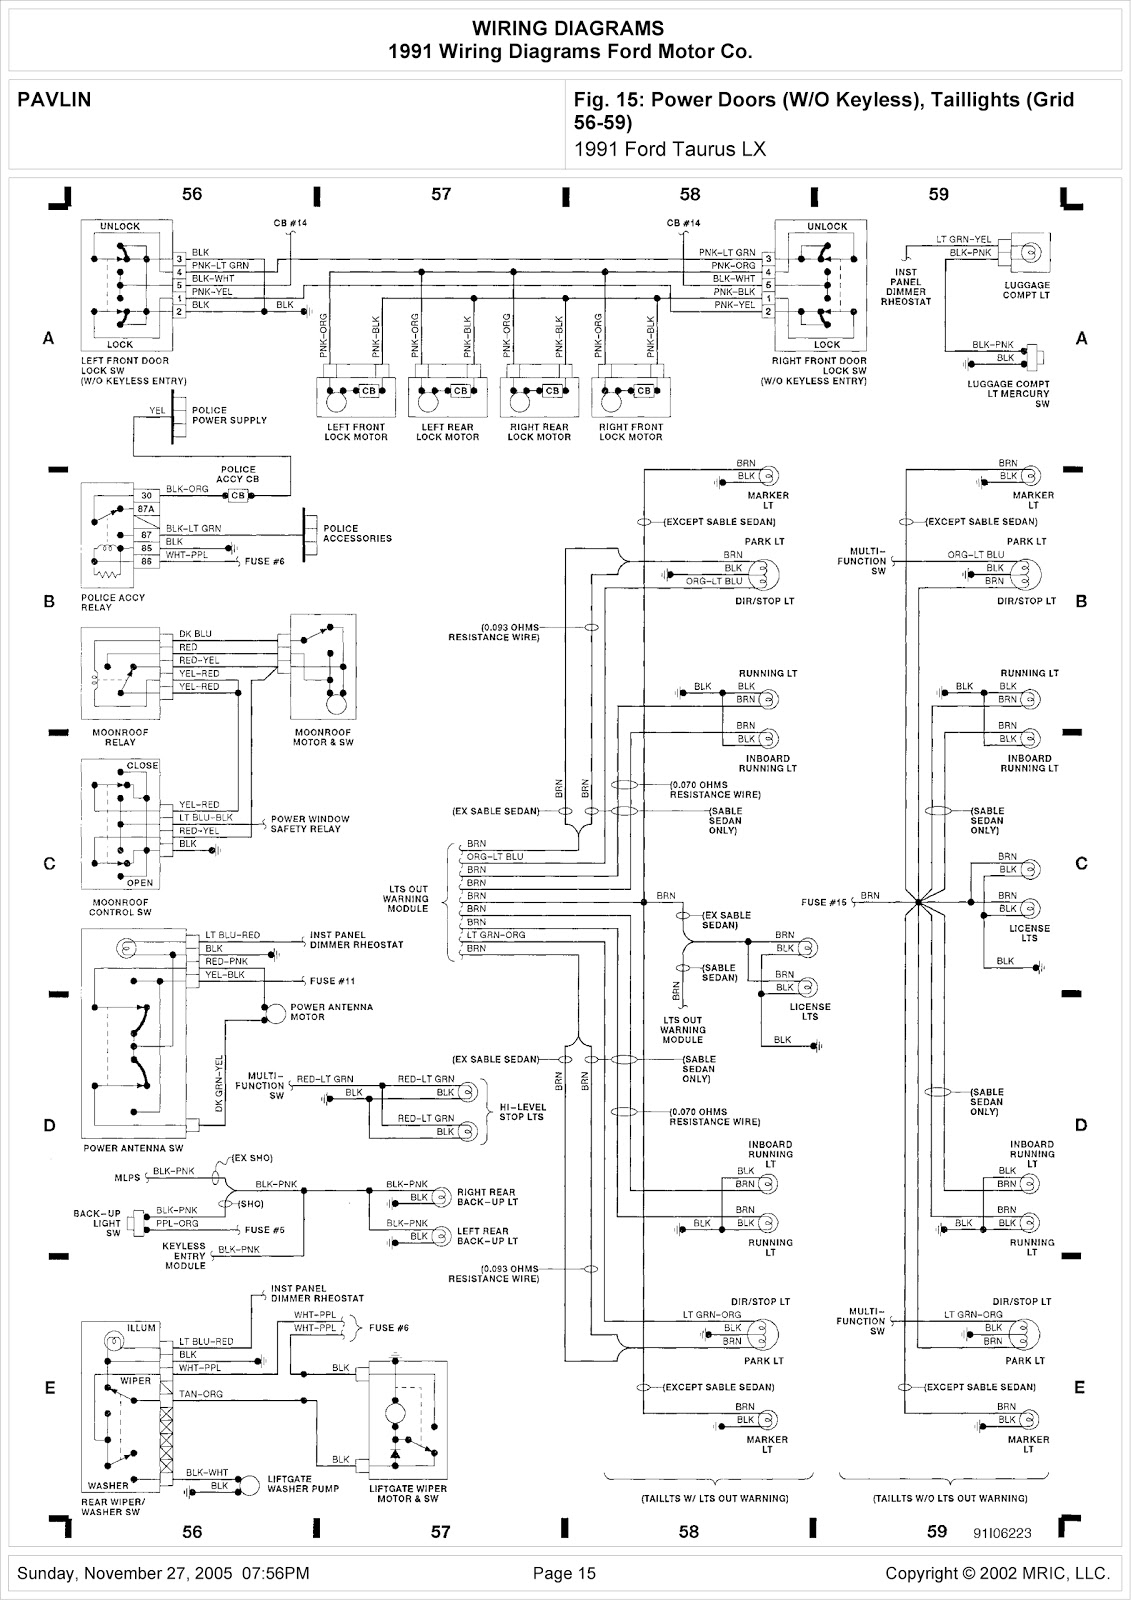 2000 ford f 150 starter solenoid 2004 ford f 150 fuse box diagram electrical single line diagram example http chaiveewanresume [ 1131 x 1600 Pixel ]